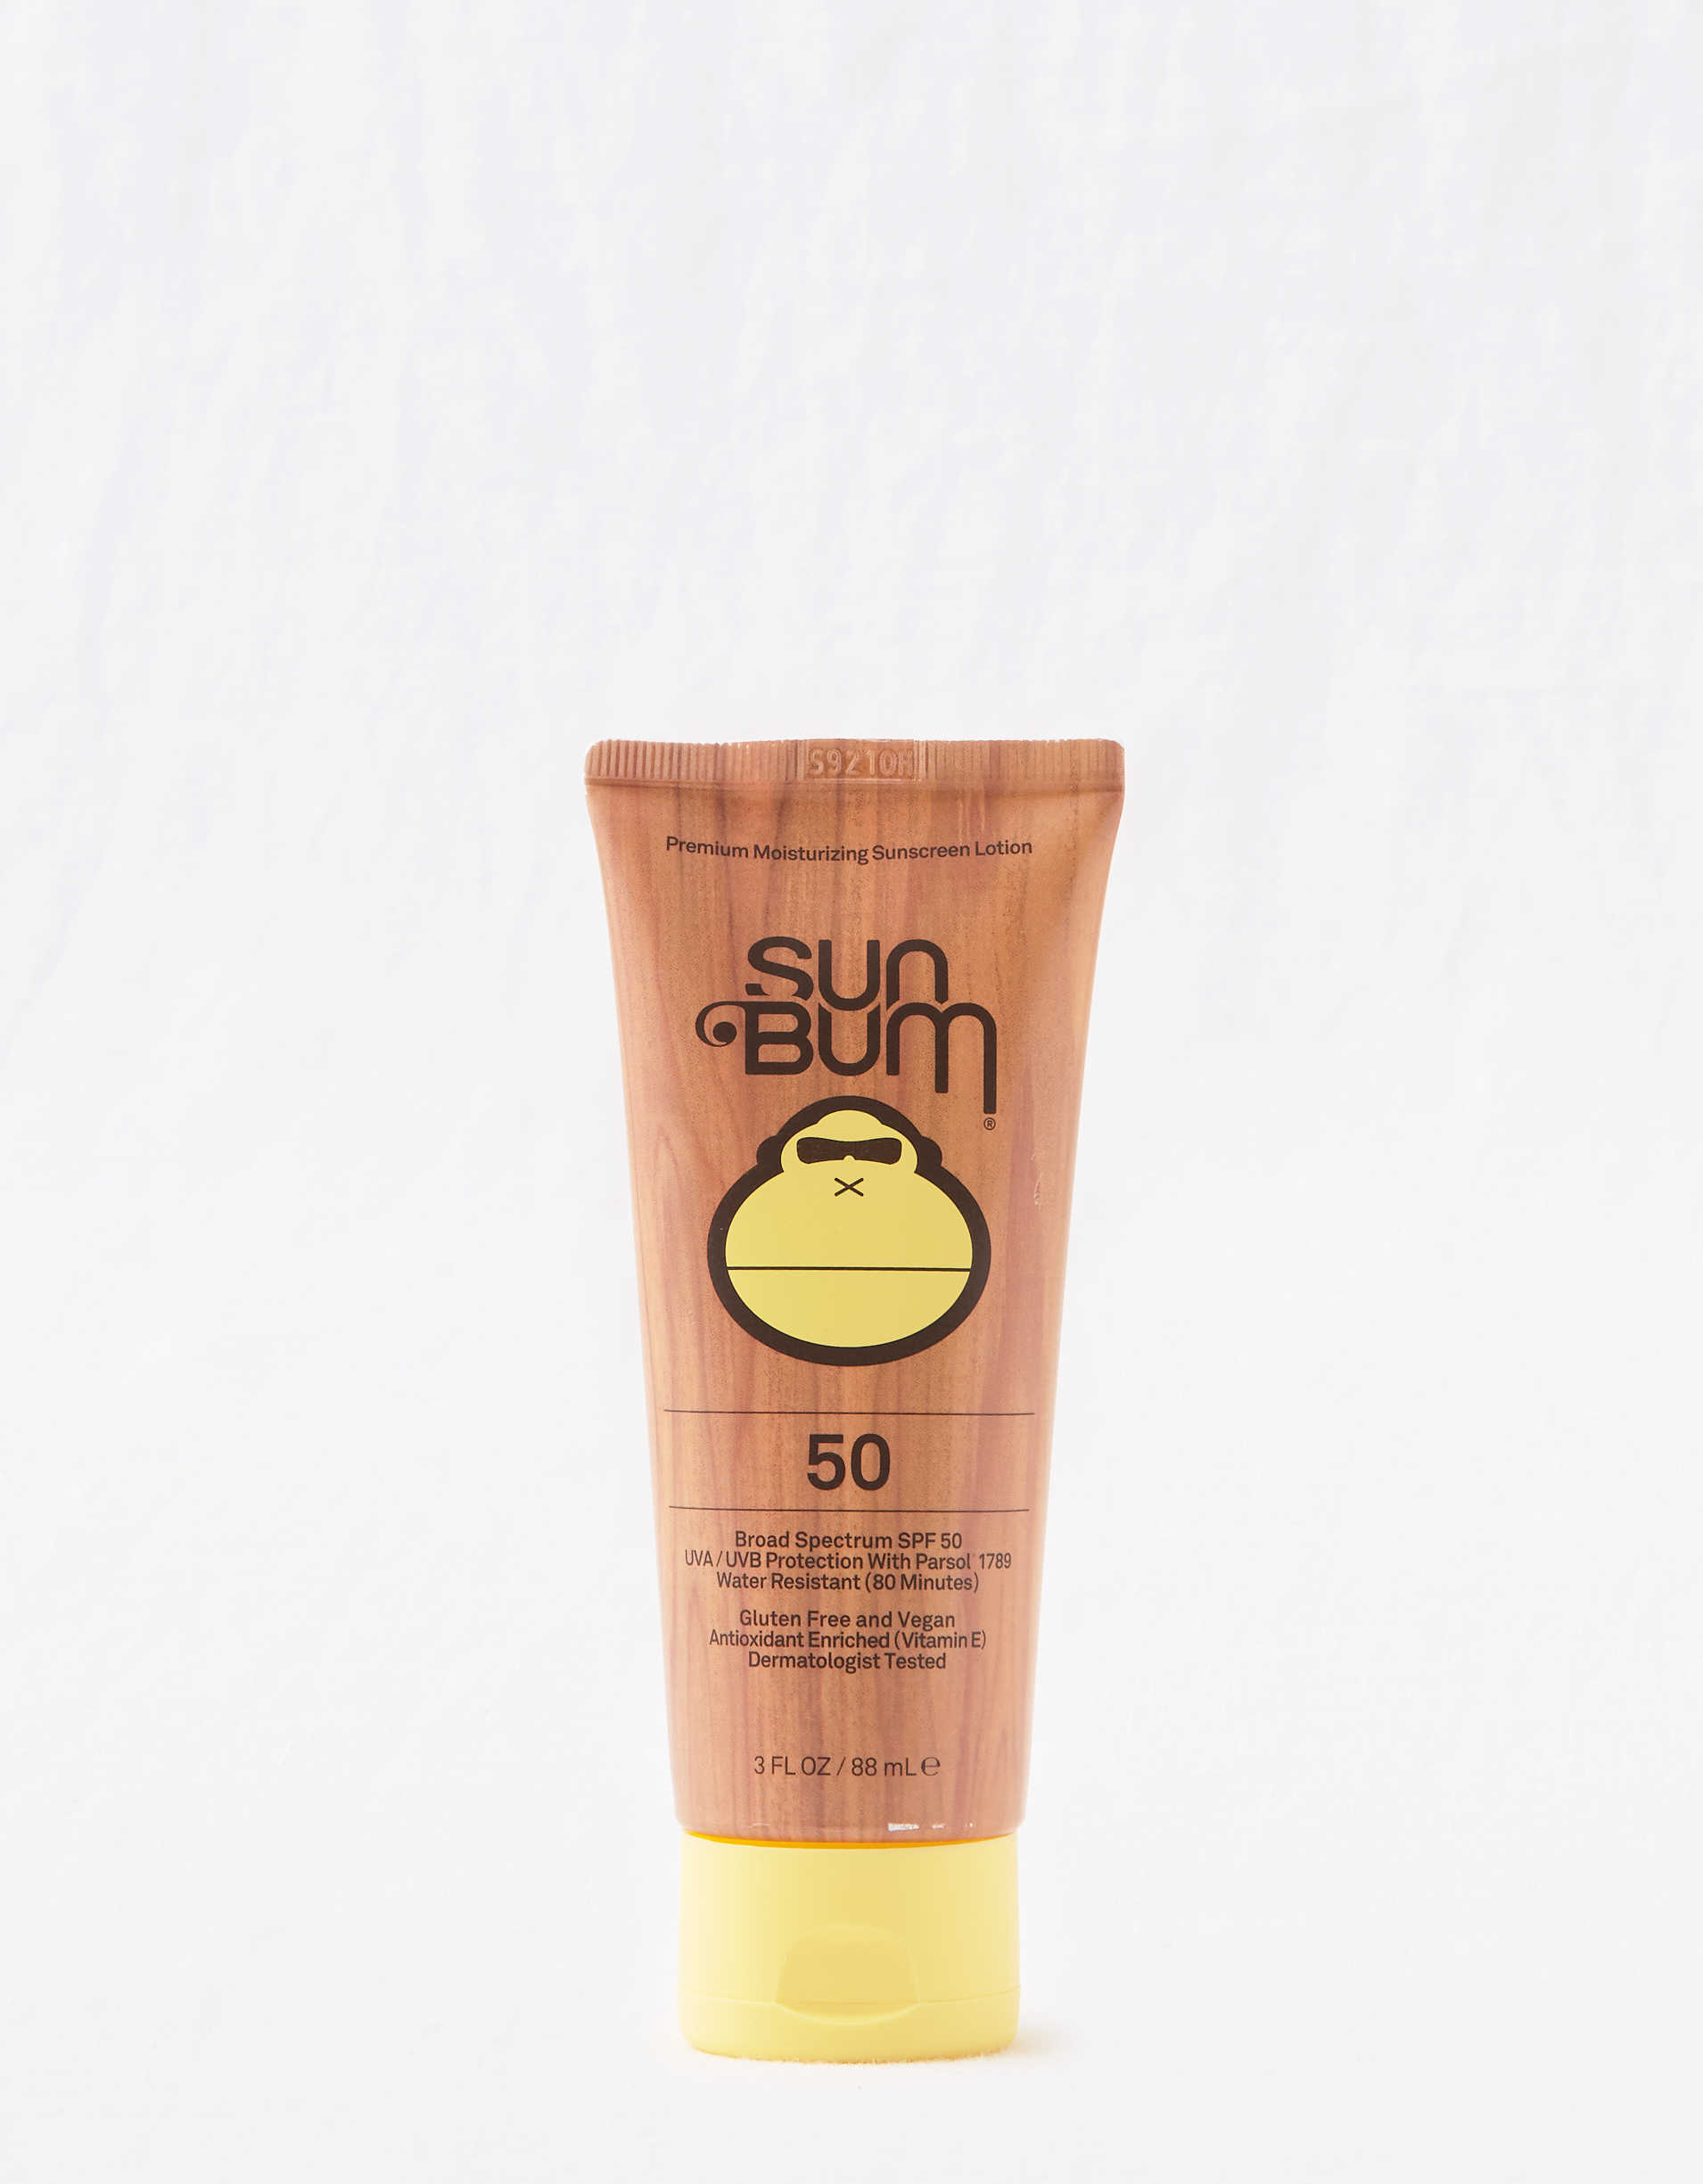 Sun Bum Original Sunscreen Shorties - SPF 50